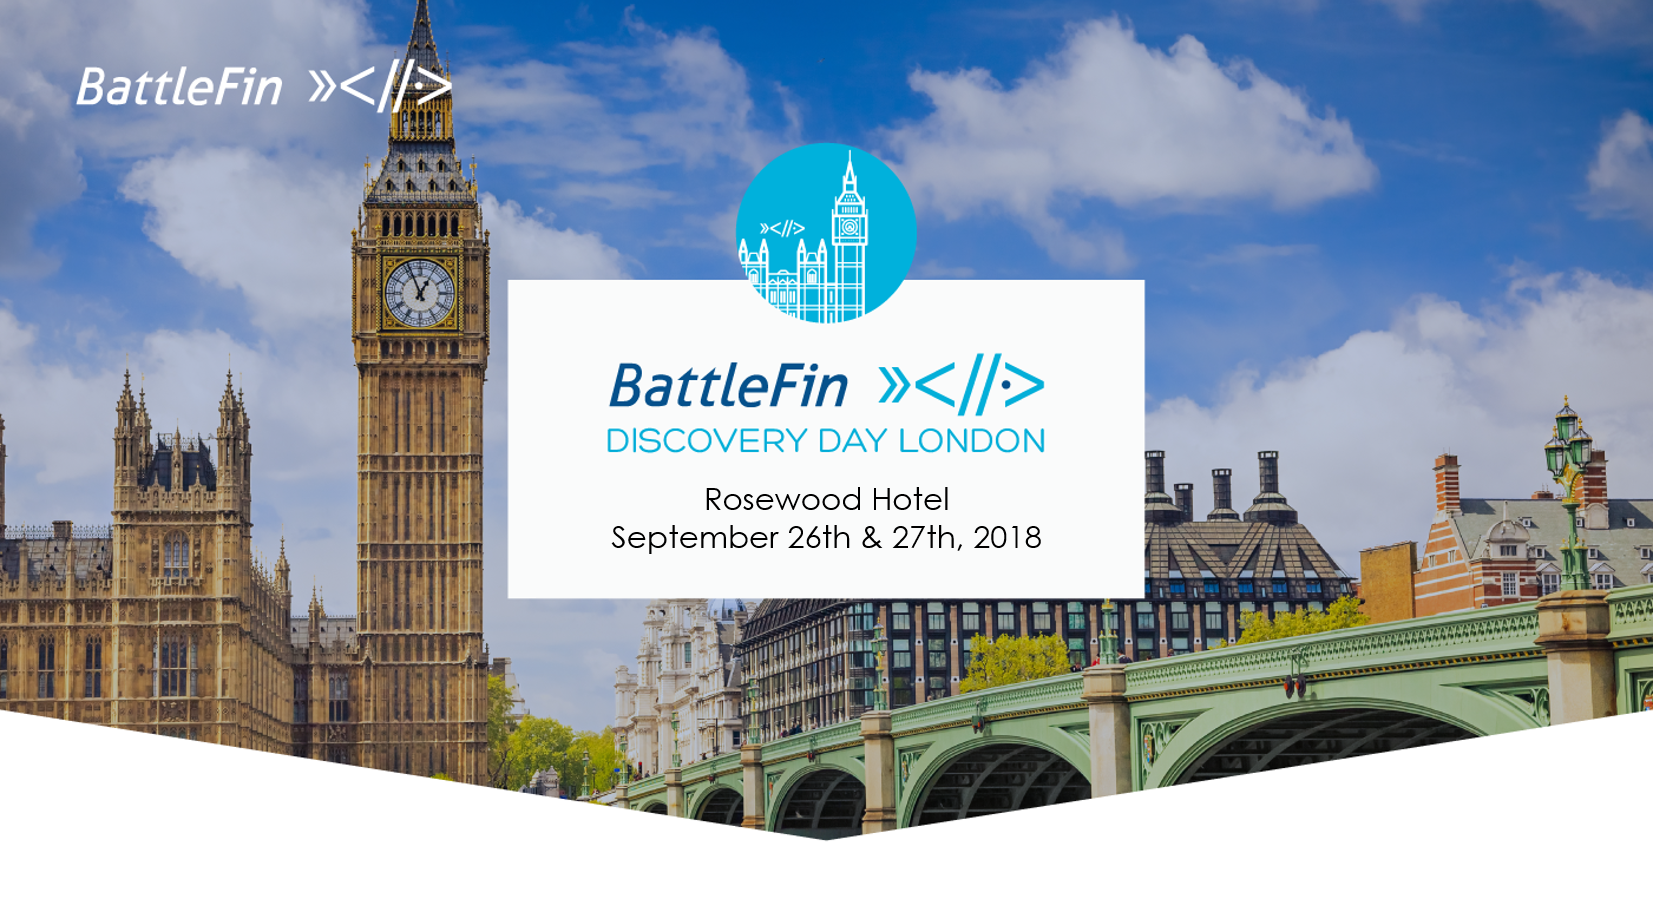 BattleFin London